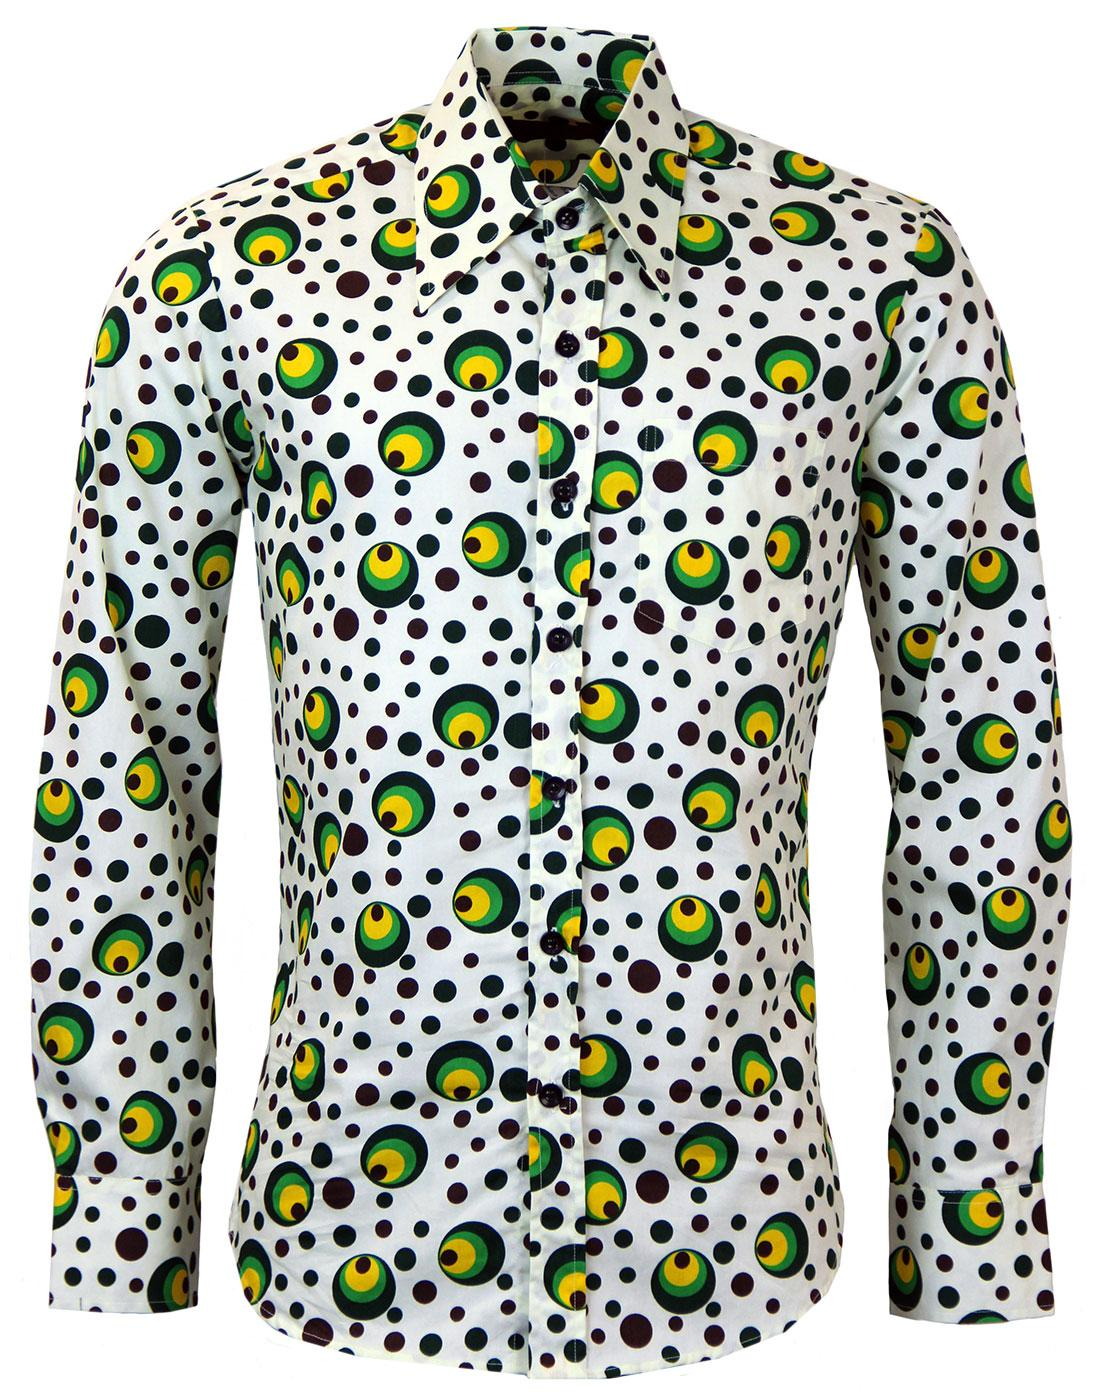 Dot CHENASKI Retro Seventies Op Art Mod Shirt G